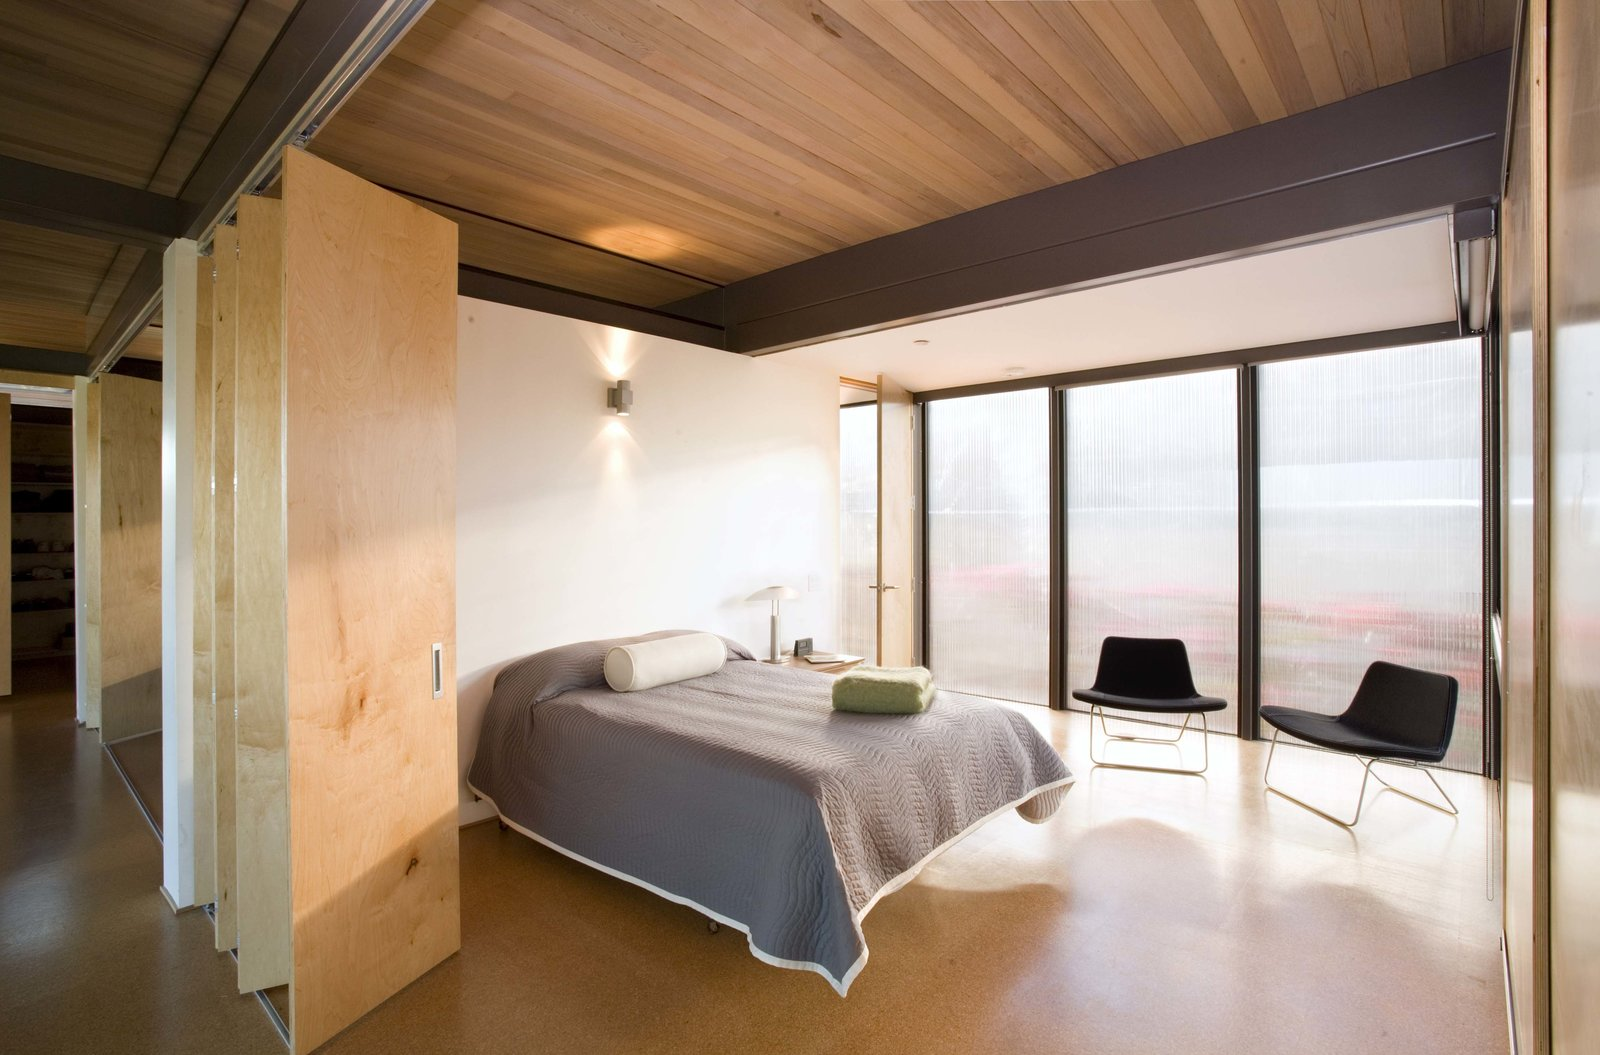 Bedroom, Linoleum Floor, Bed, Wall Lighting, Chair, Night Stands, Lamps, and Table Lighting  Photo 17 of 21 in Here Are the Modern Prefab Designs That Amazon's Investing In